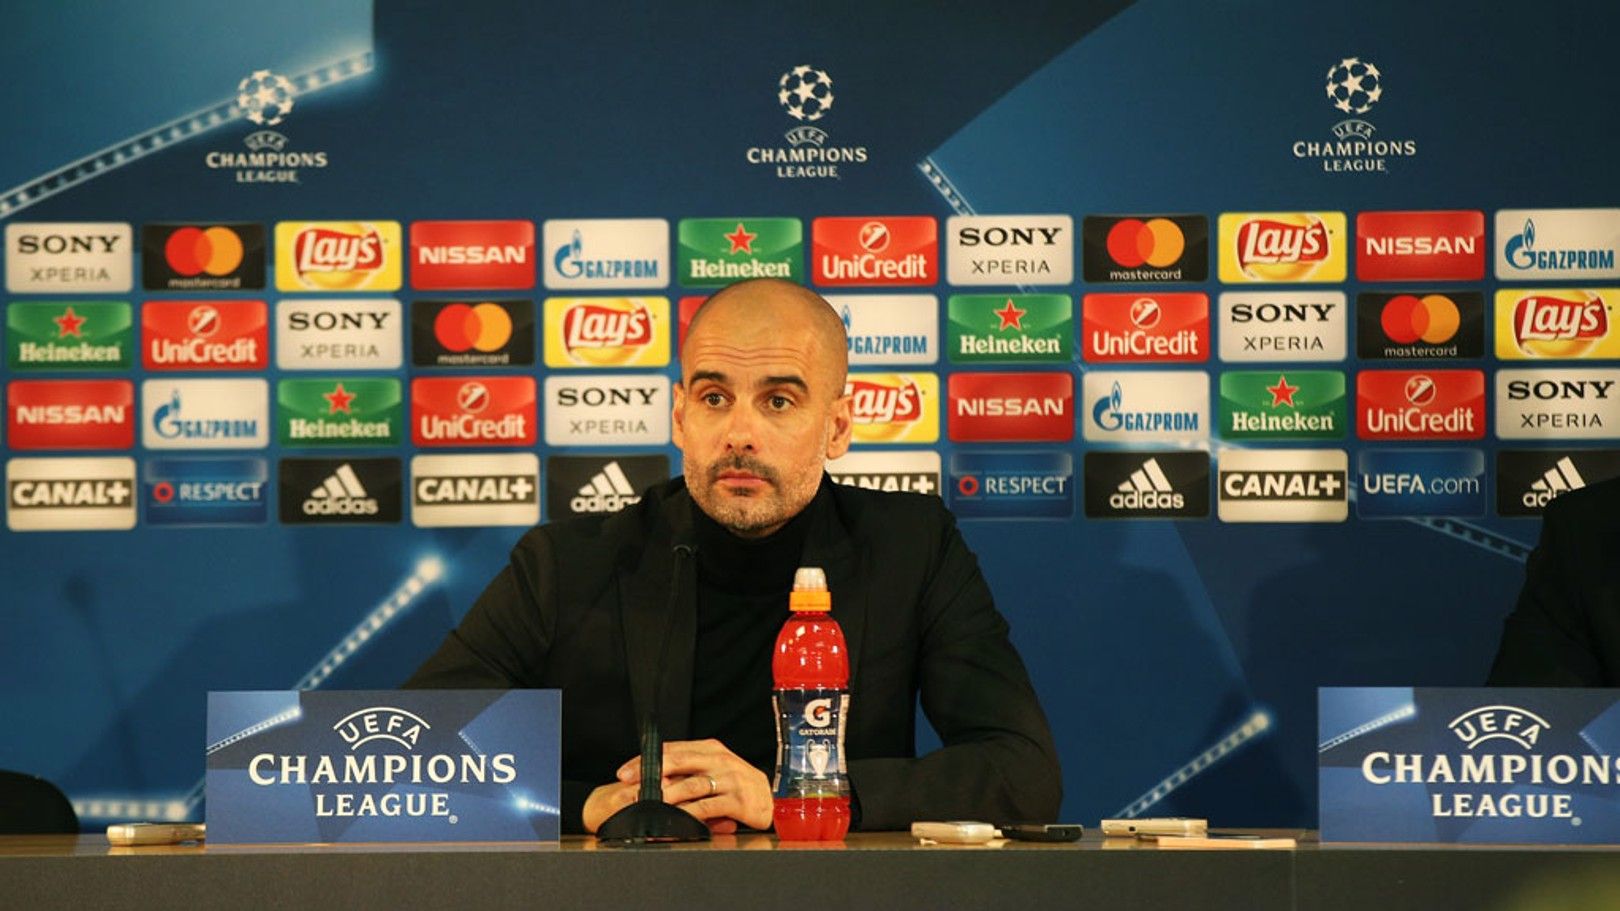 PEP: We have to attack - or face elimination